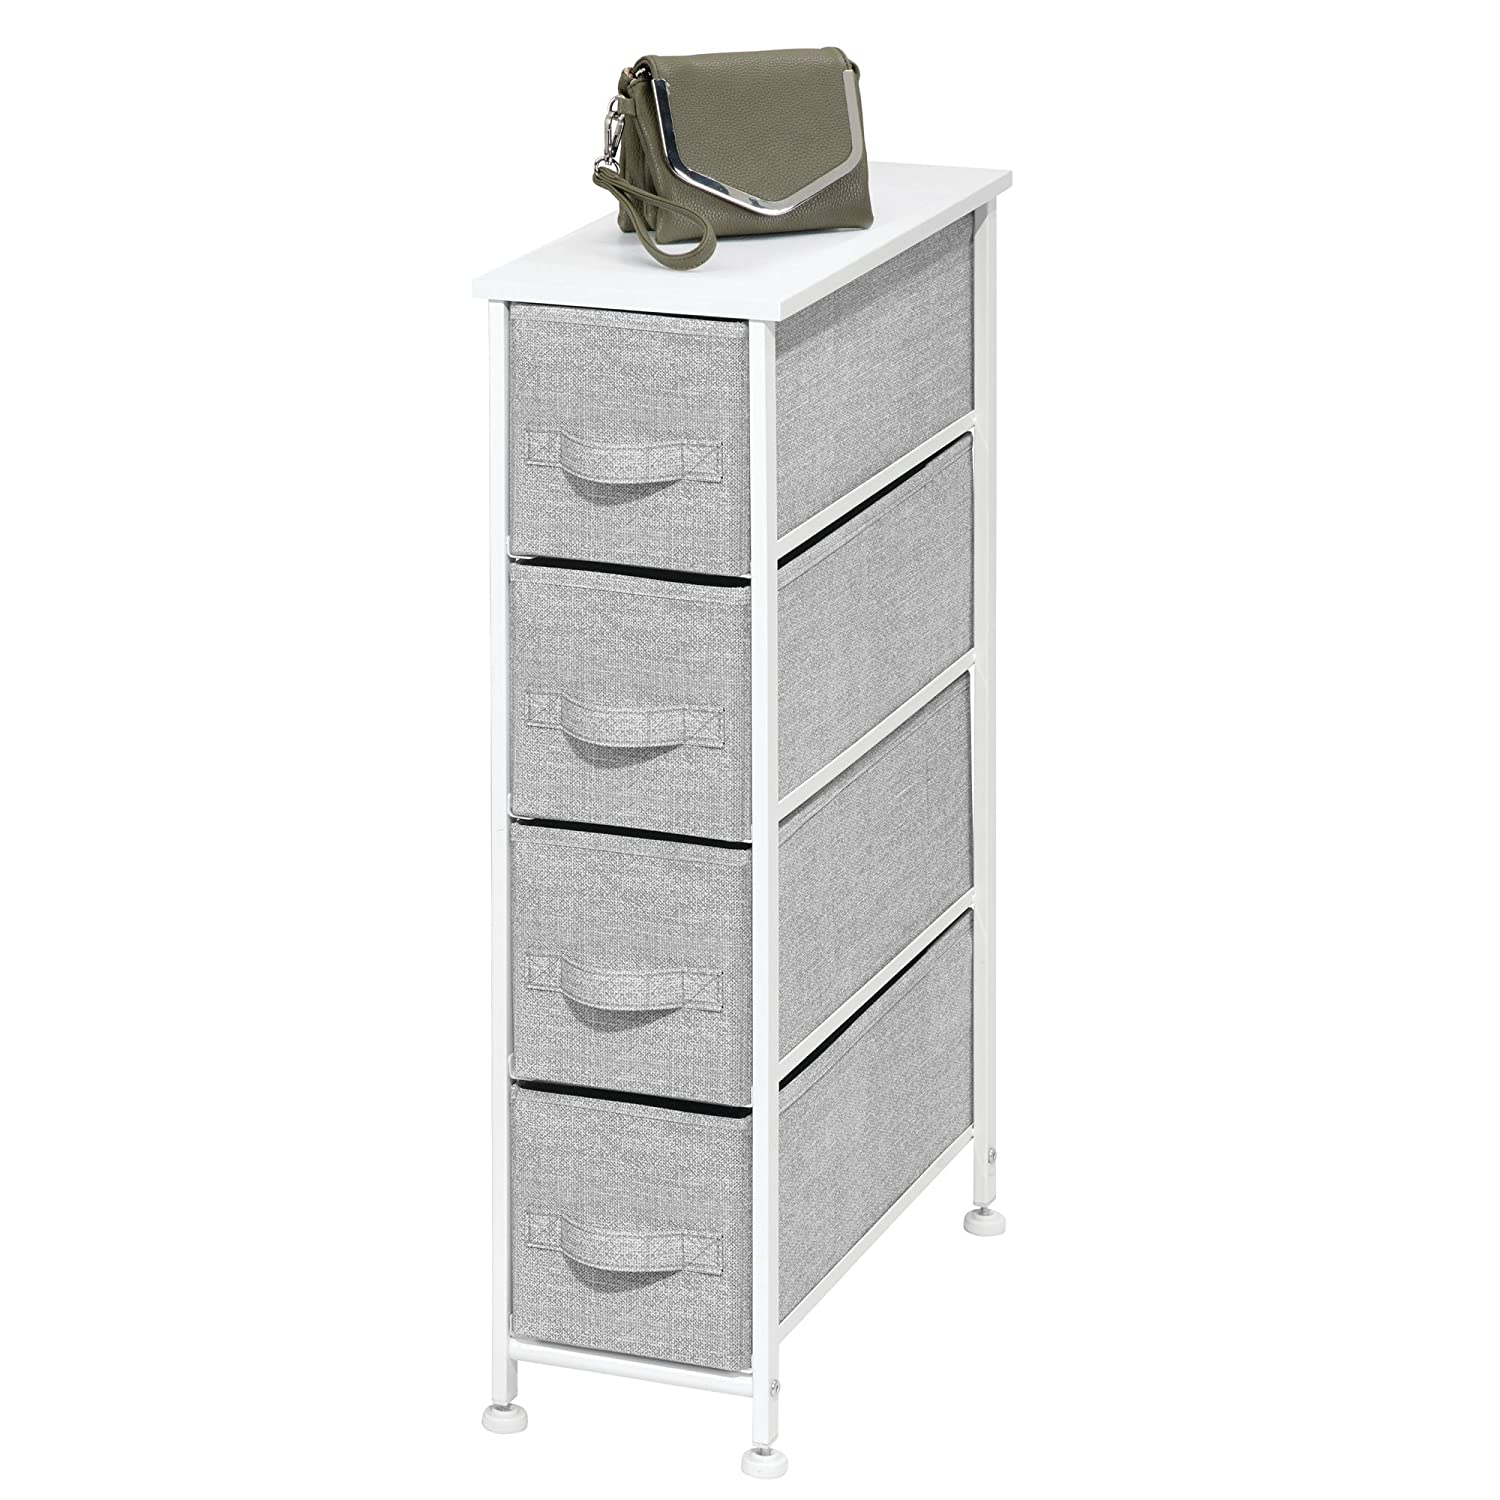 mDesign Narrow Vertical Dresser Storage Tower - Sturdy Metal Frame, Wood Top, Easy Pull Fabric Bins - Organizer Unit for Bedroom, Hallway, Entryway, Closet - Textured Print, 4 Drawers - Charcoal Gray MetroDecor 00130MDCO